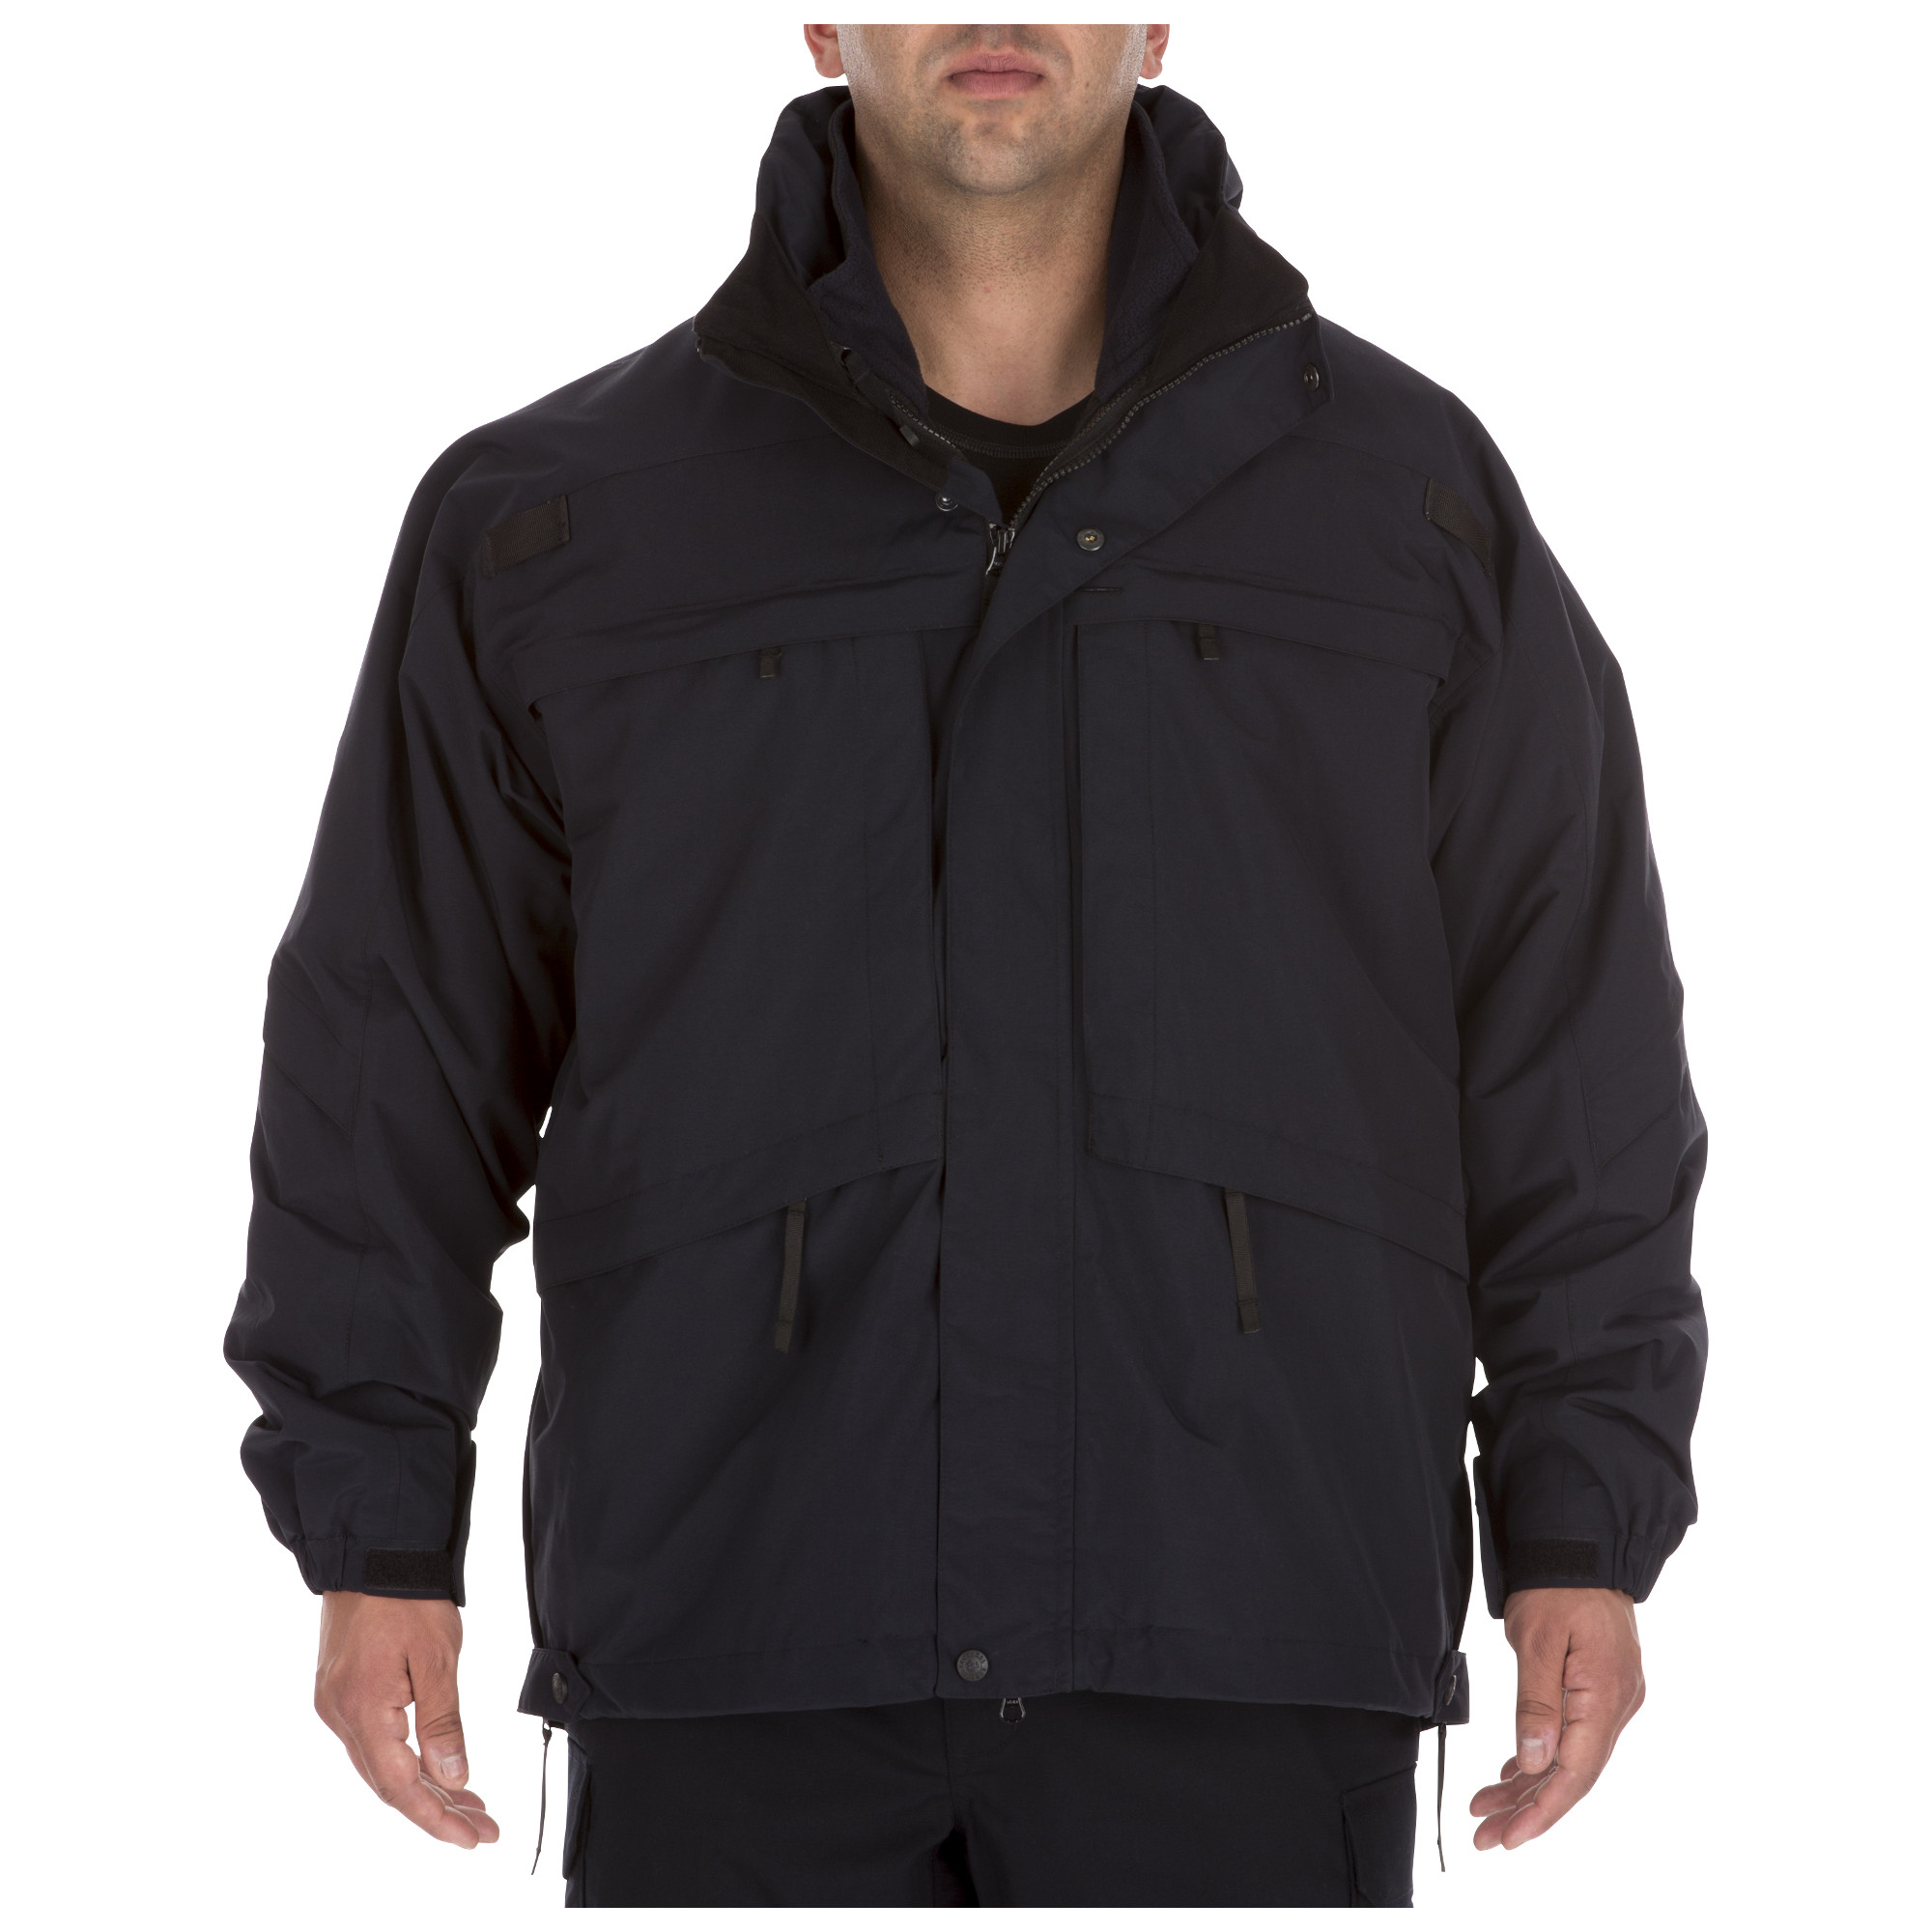 5.11 Tactical Men's 3-in-1 Parka Jacket™ (Blue) thumbnail